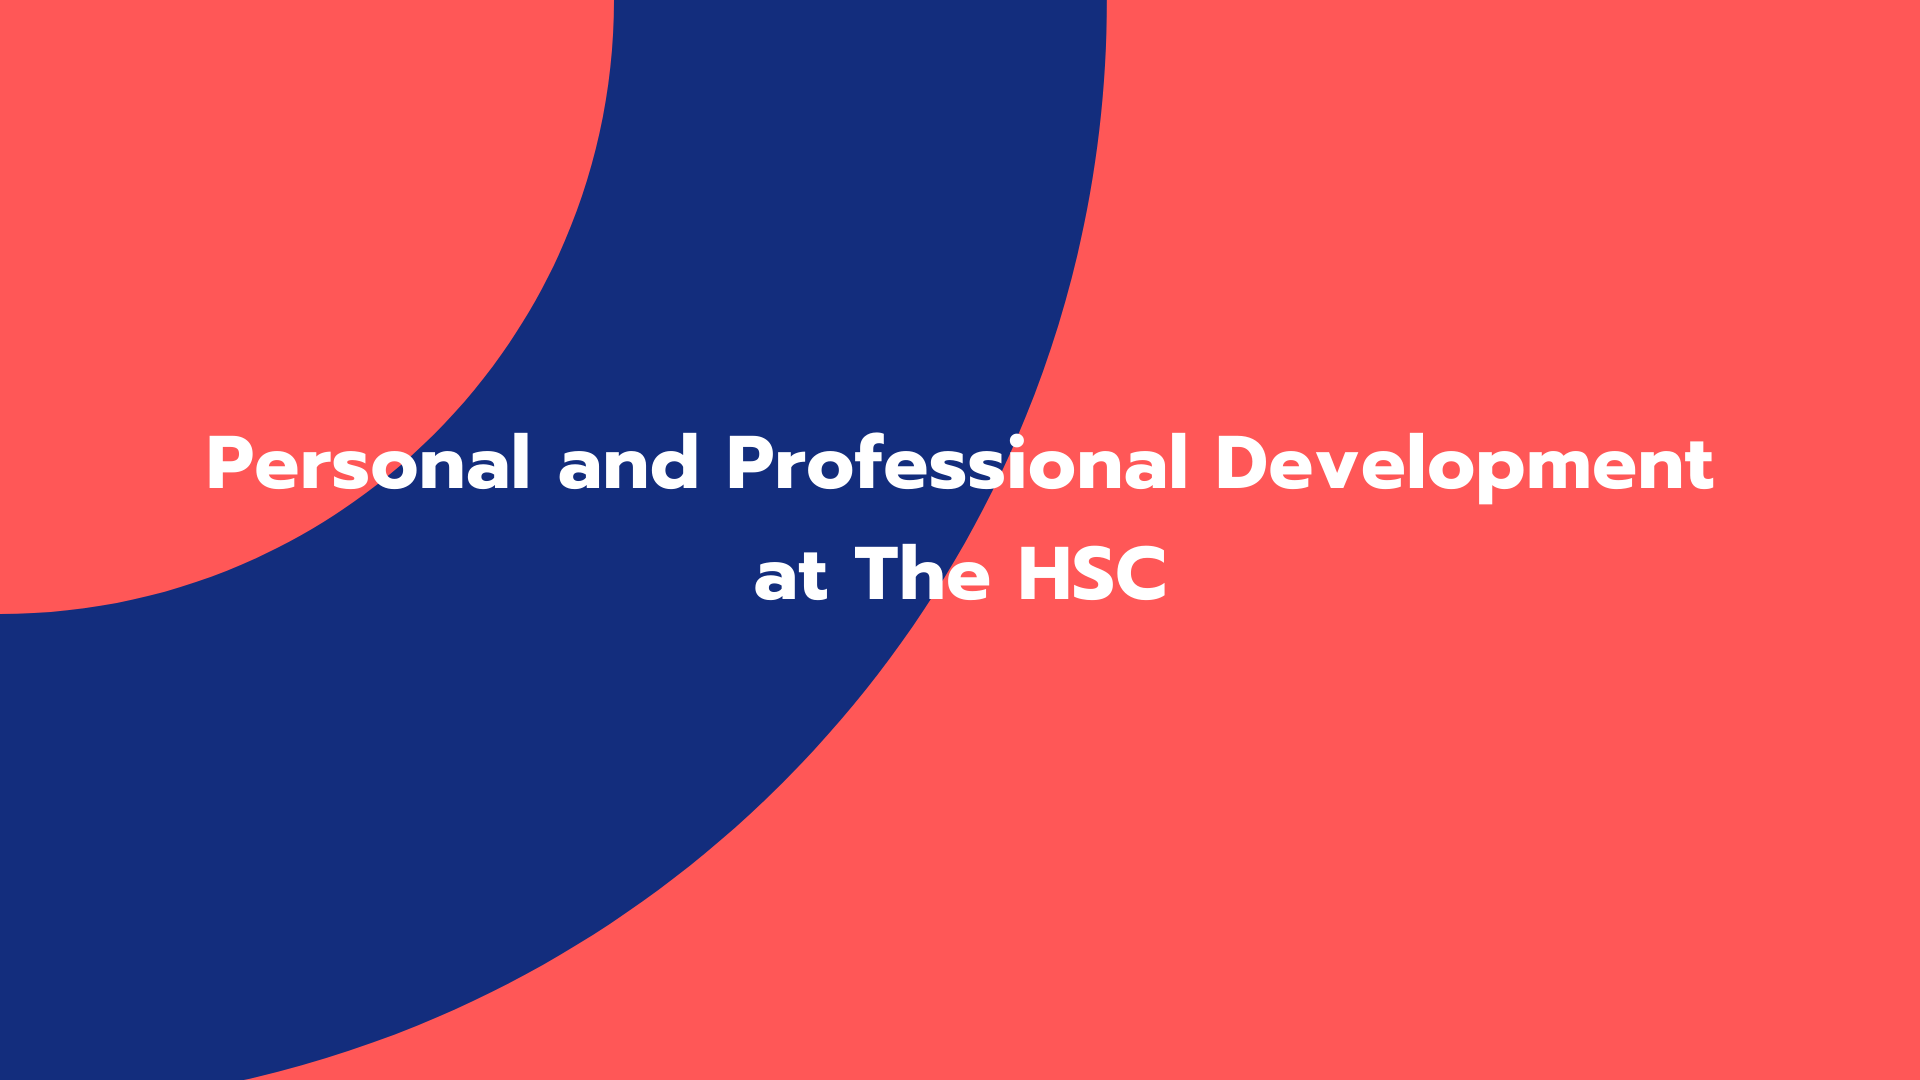 Personal and Professional Development at the HSC